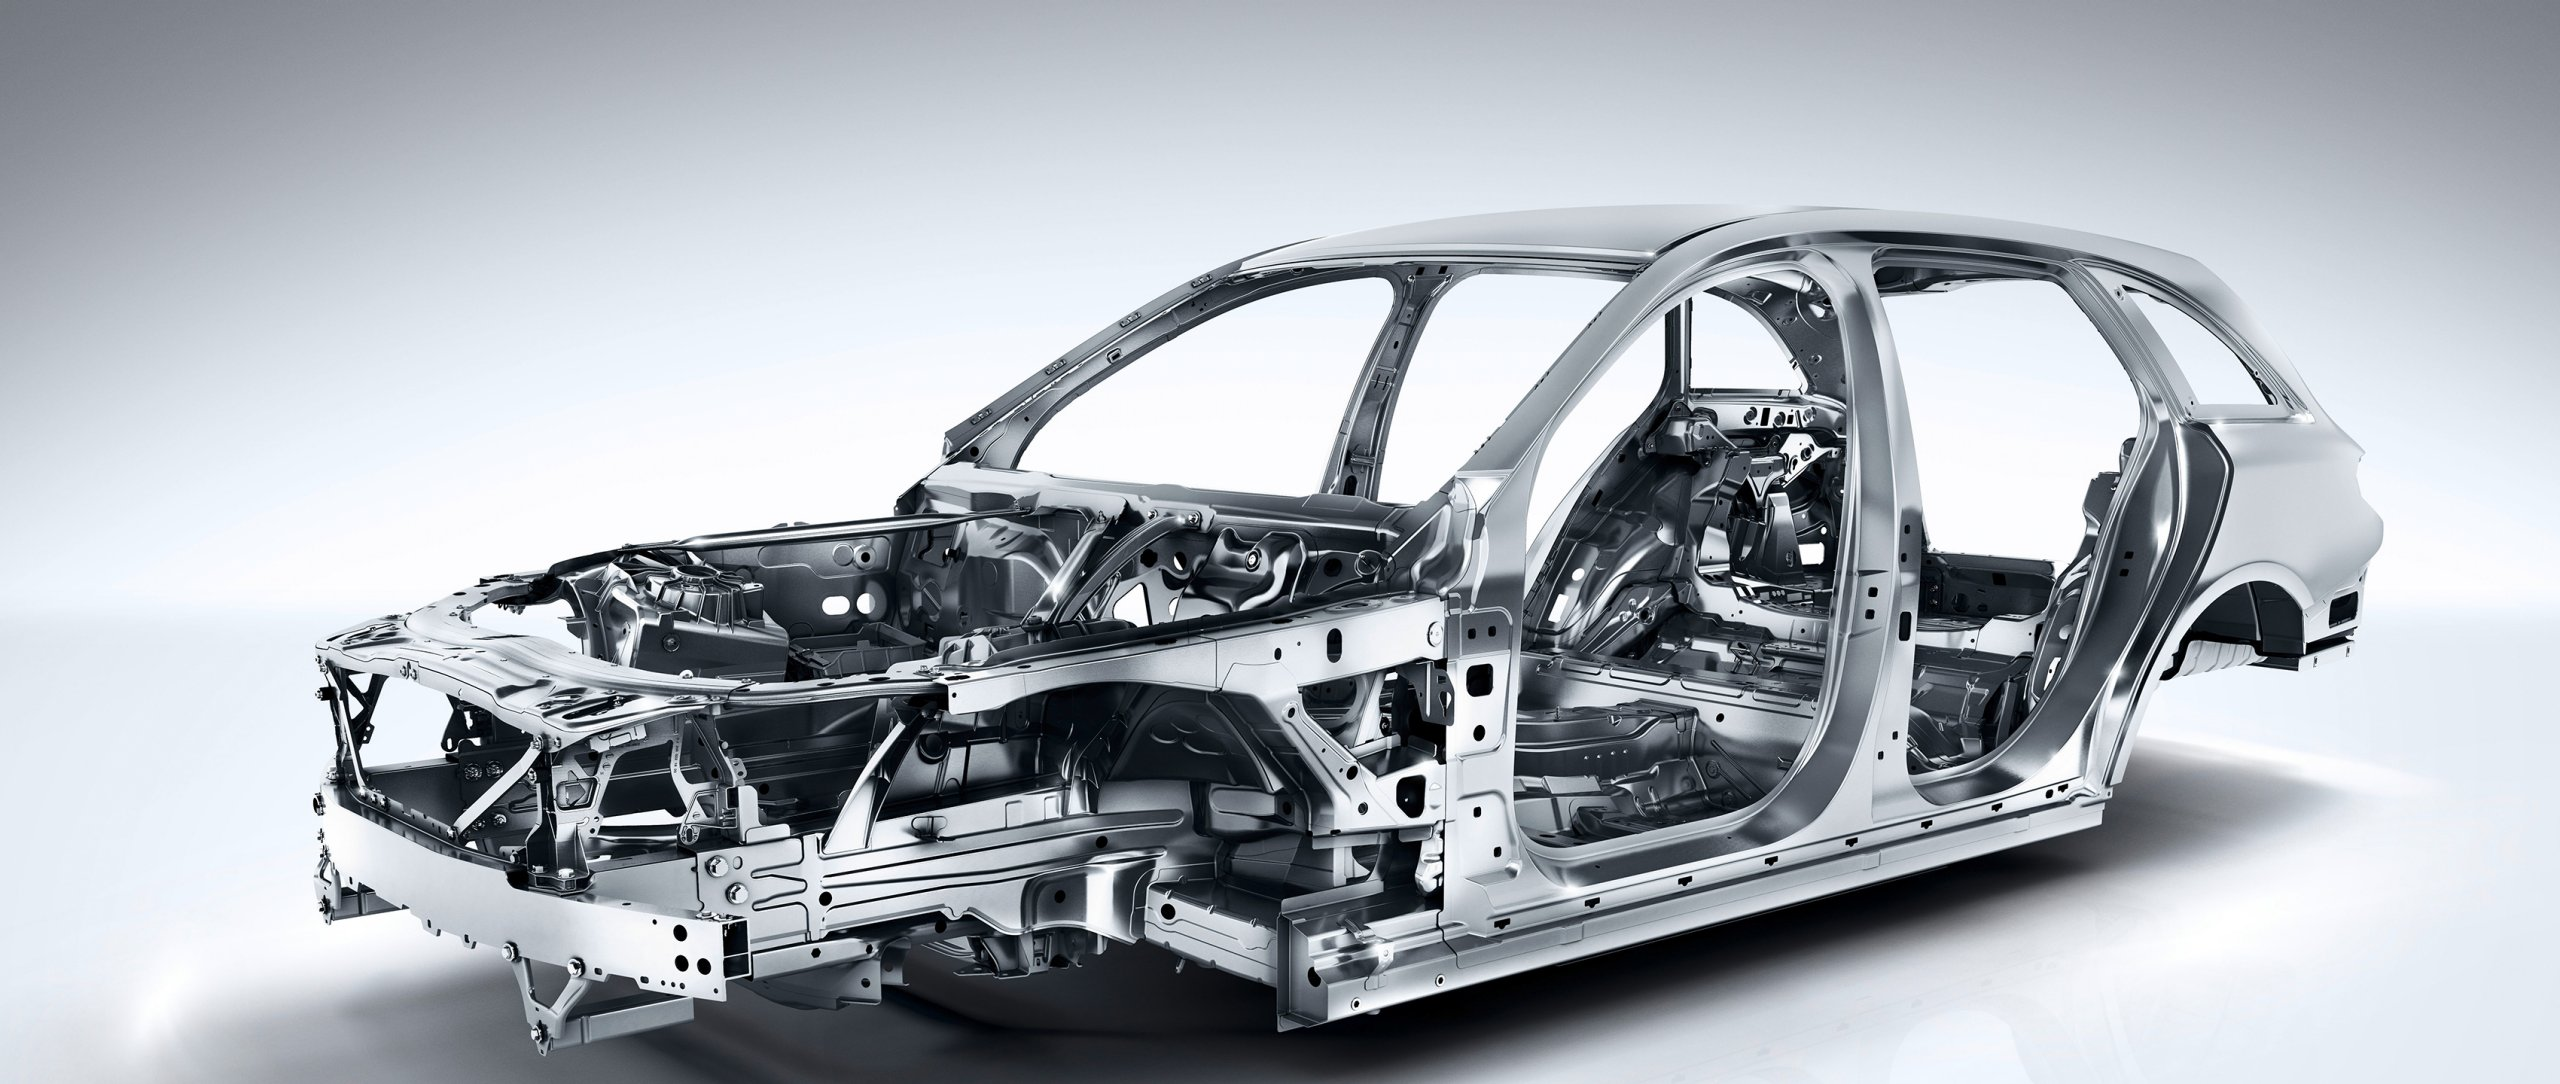 Bodyshell of the Mercedes-Benz C-Class Estate (S 205)